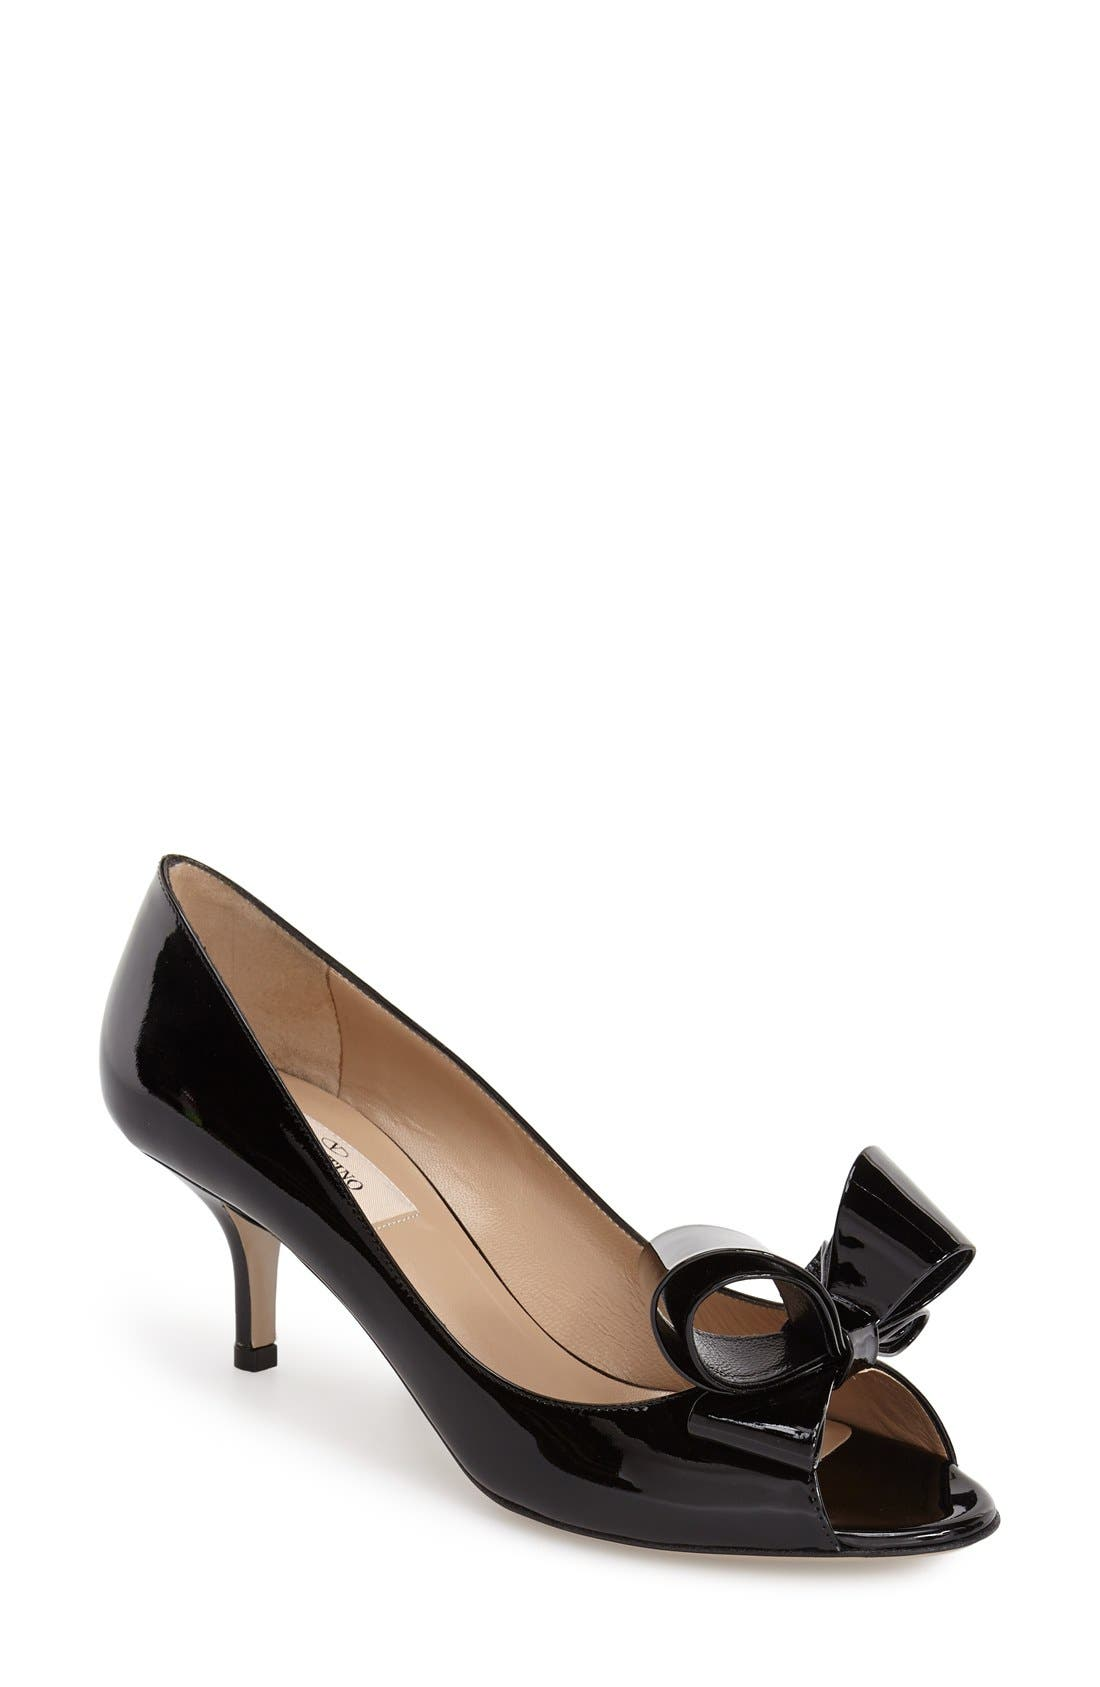 Alternate Image 1 Selected - Valentino Couture Bow Pump (Women)